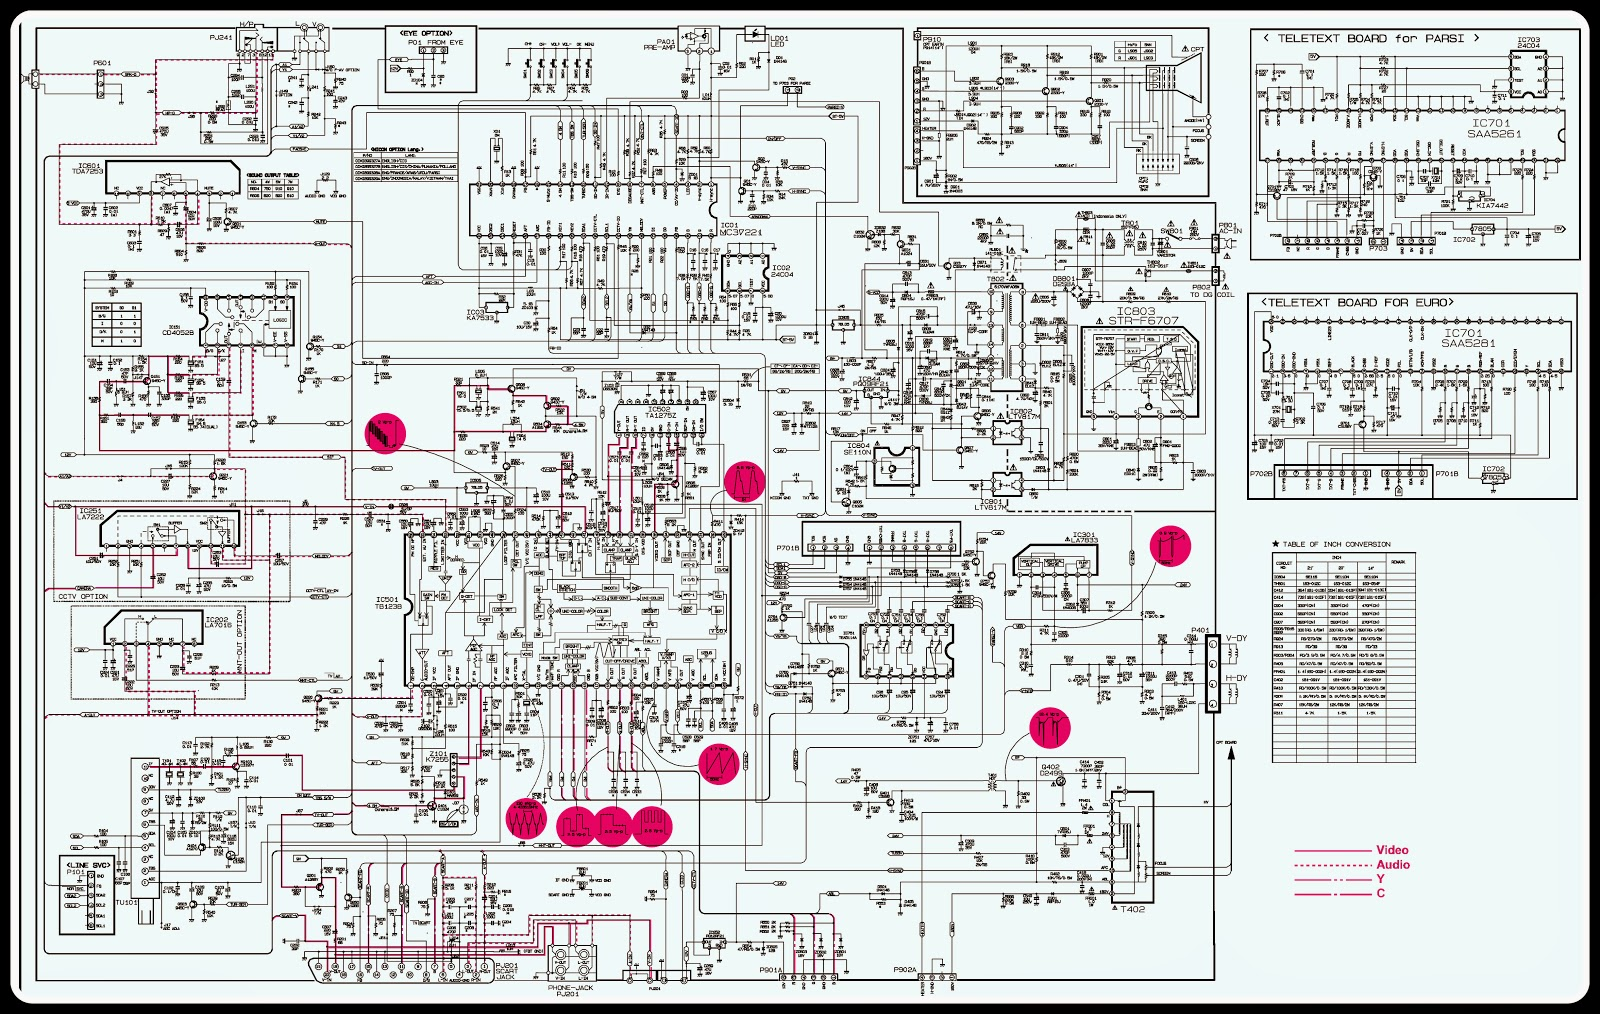 medium resolution of panasonic tv hookup diagram wiring diagram blogs charter connection diagrams tv connection diagram